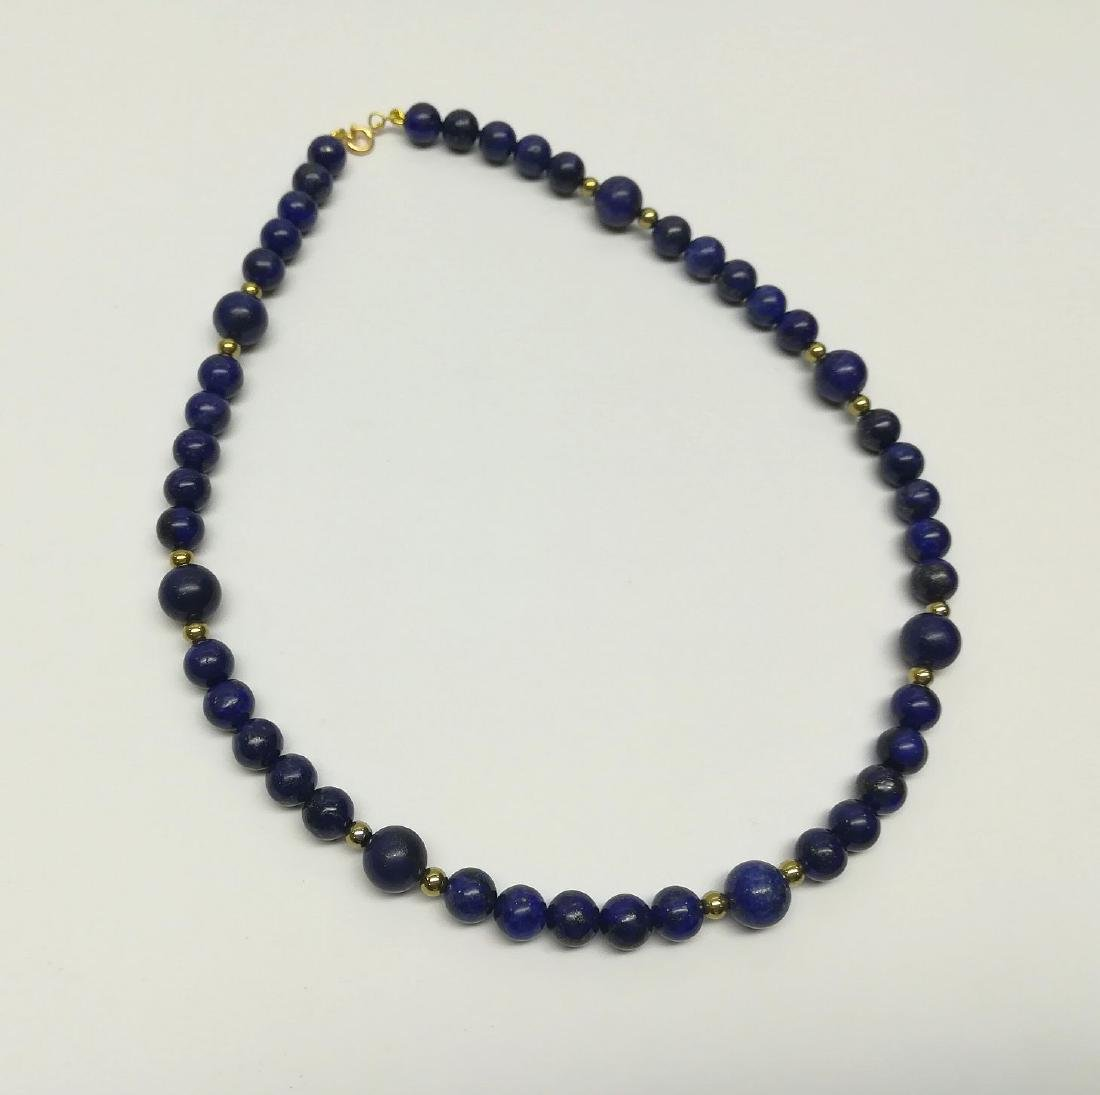 Lapiz Lazuli Necklace with gold hoop clasp Stones - 3